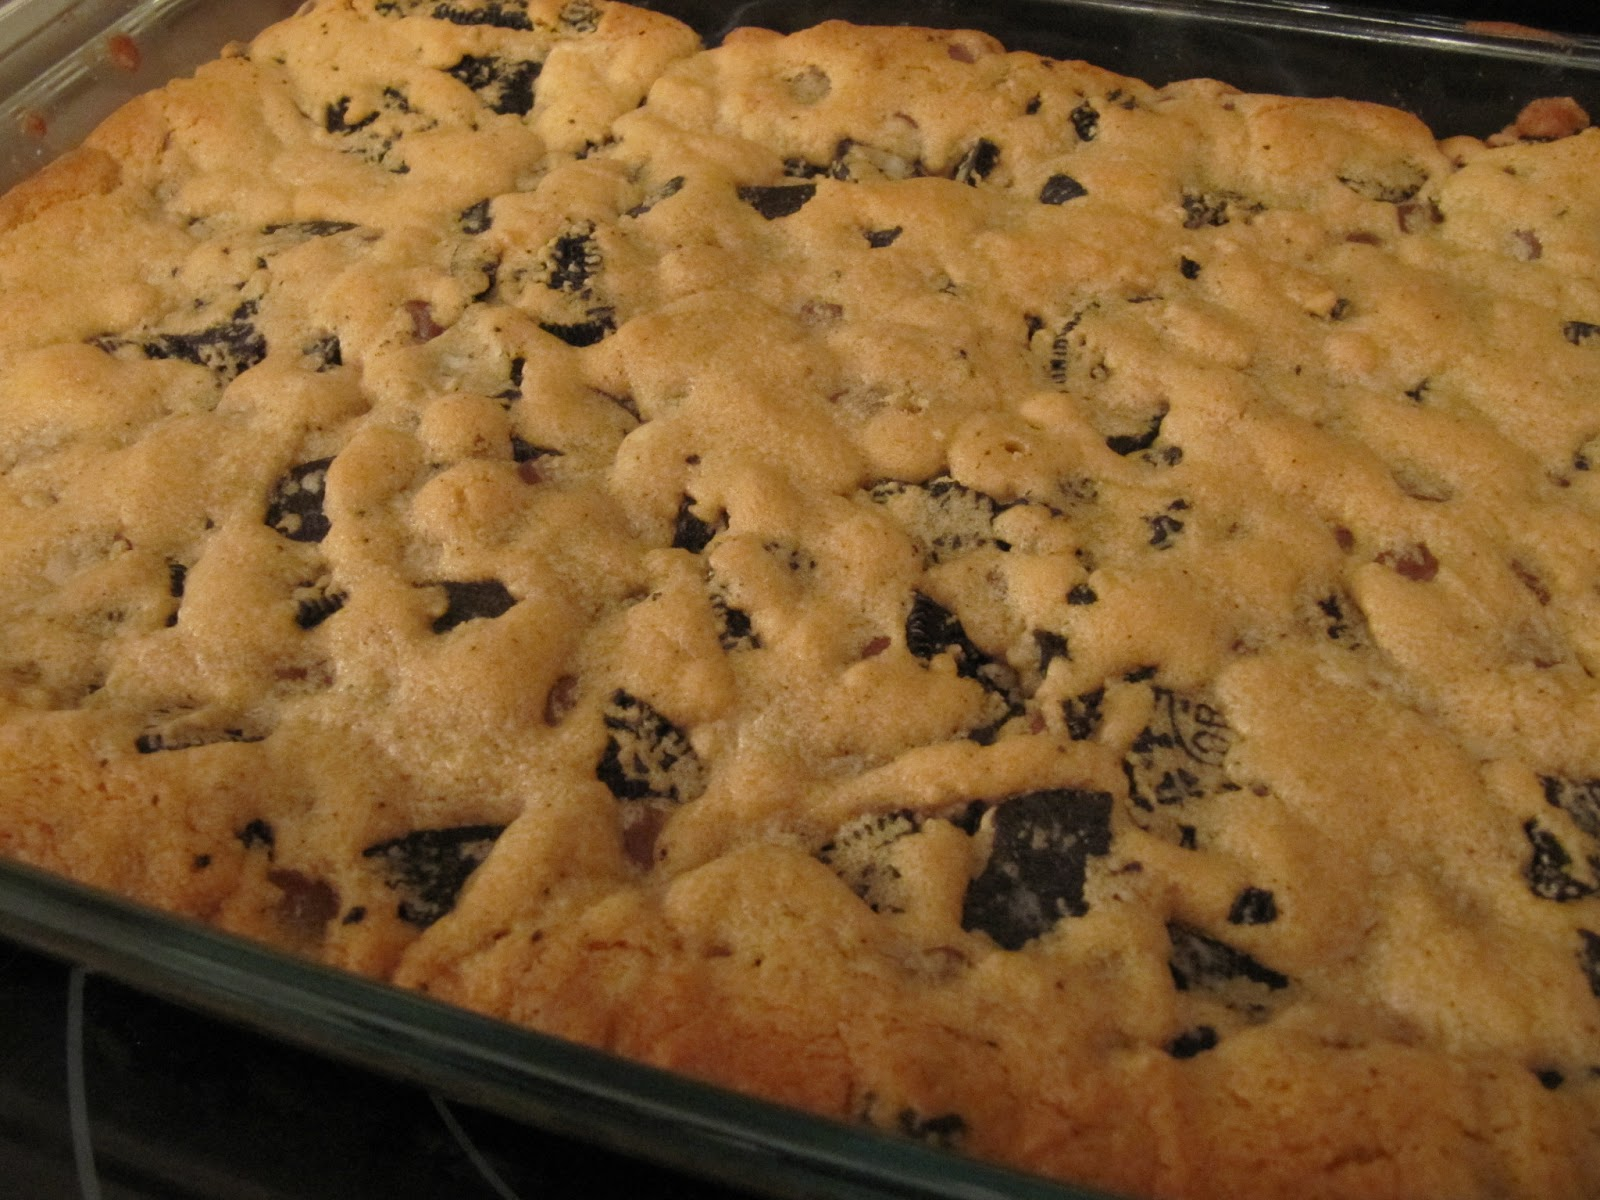 Oreo-Chocolate Chip-Peanut Butter Bars (aka 'Monster Cookies')